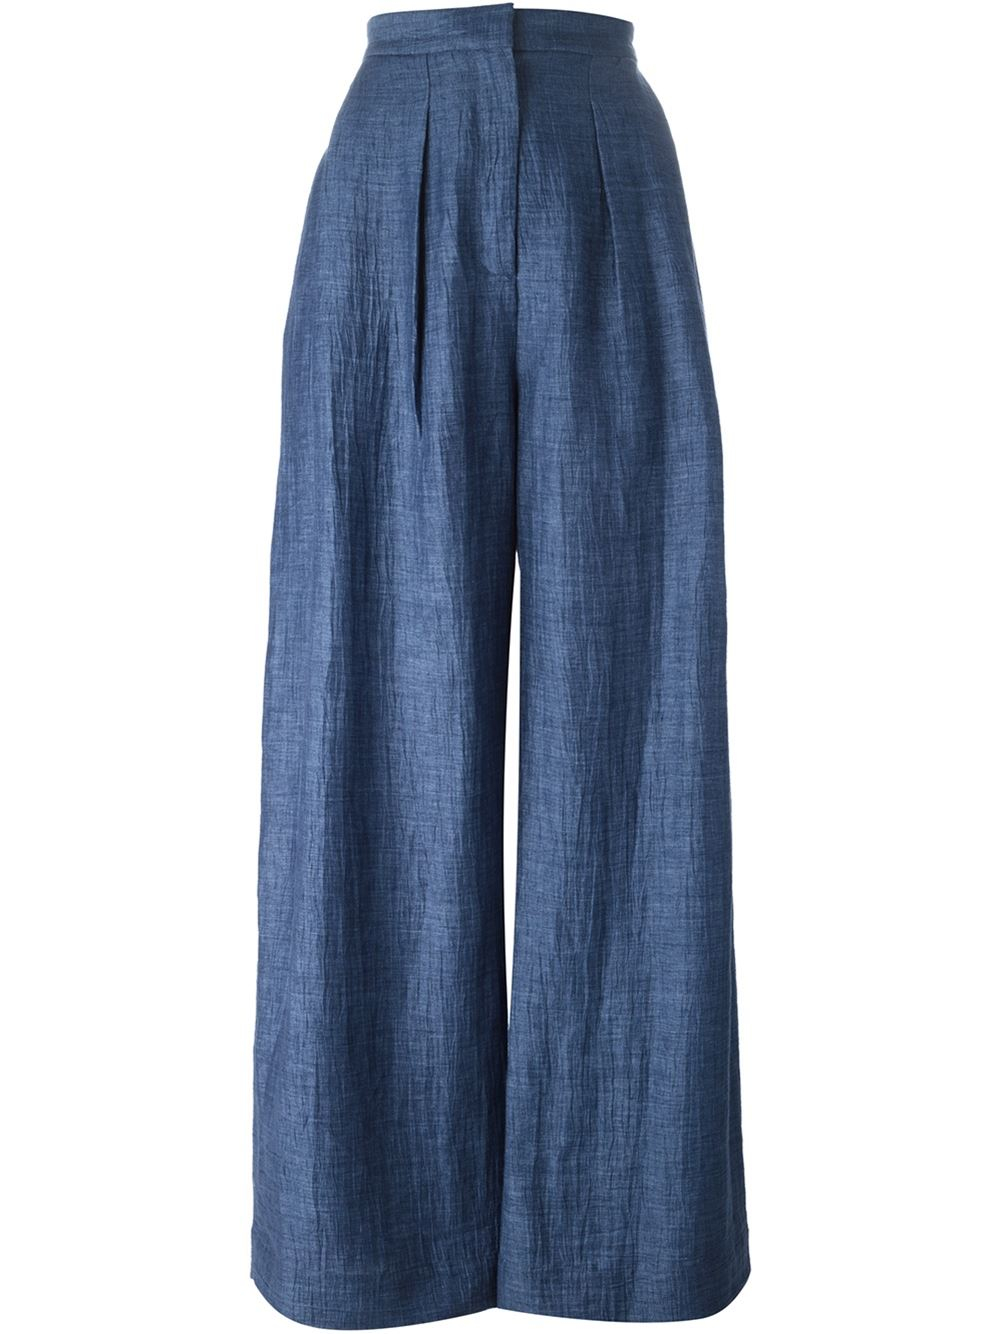 Shop a range of women's wide leg pants online at David Jones. Buy from our carefully curated edit of women's wide leg pants, high waisted wide leg pants, palazzo pants, gaucho pants, wide leg printed pants and wide leg trouser pants, available in a range of colours, prints and fabrics.